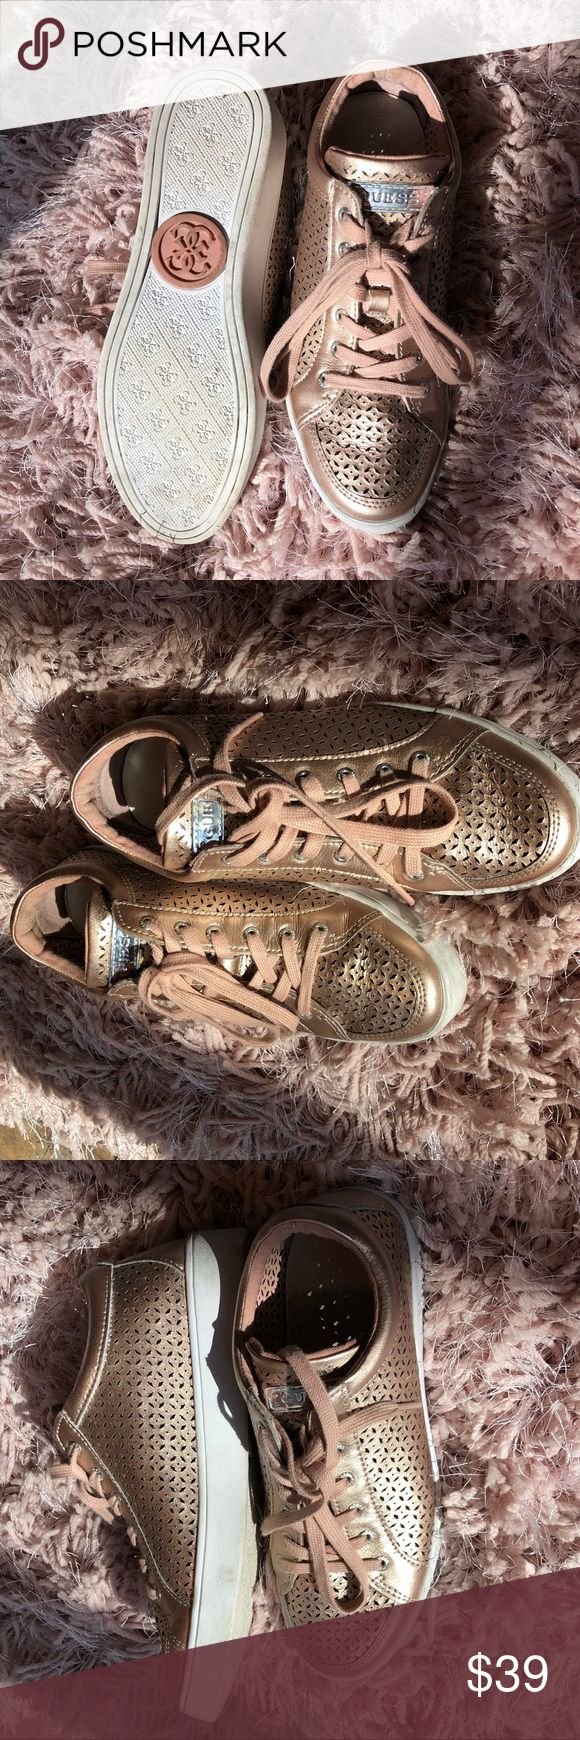 Guess Rose Gold Sneakers Guess Sneakers with Rose Gold leather mesh. Beautiful shoes from Amsterdam. Perfect for spring. Guess Shoes Sneakers